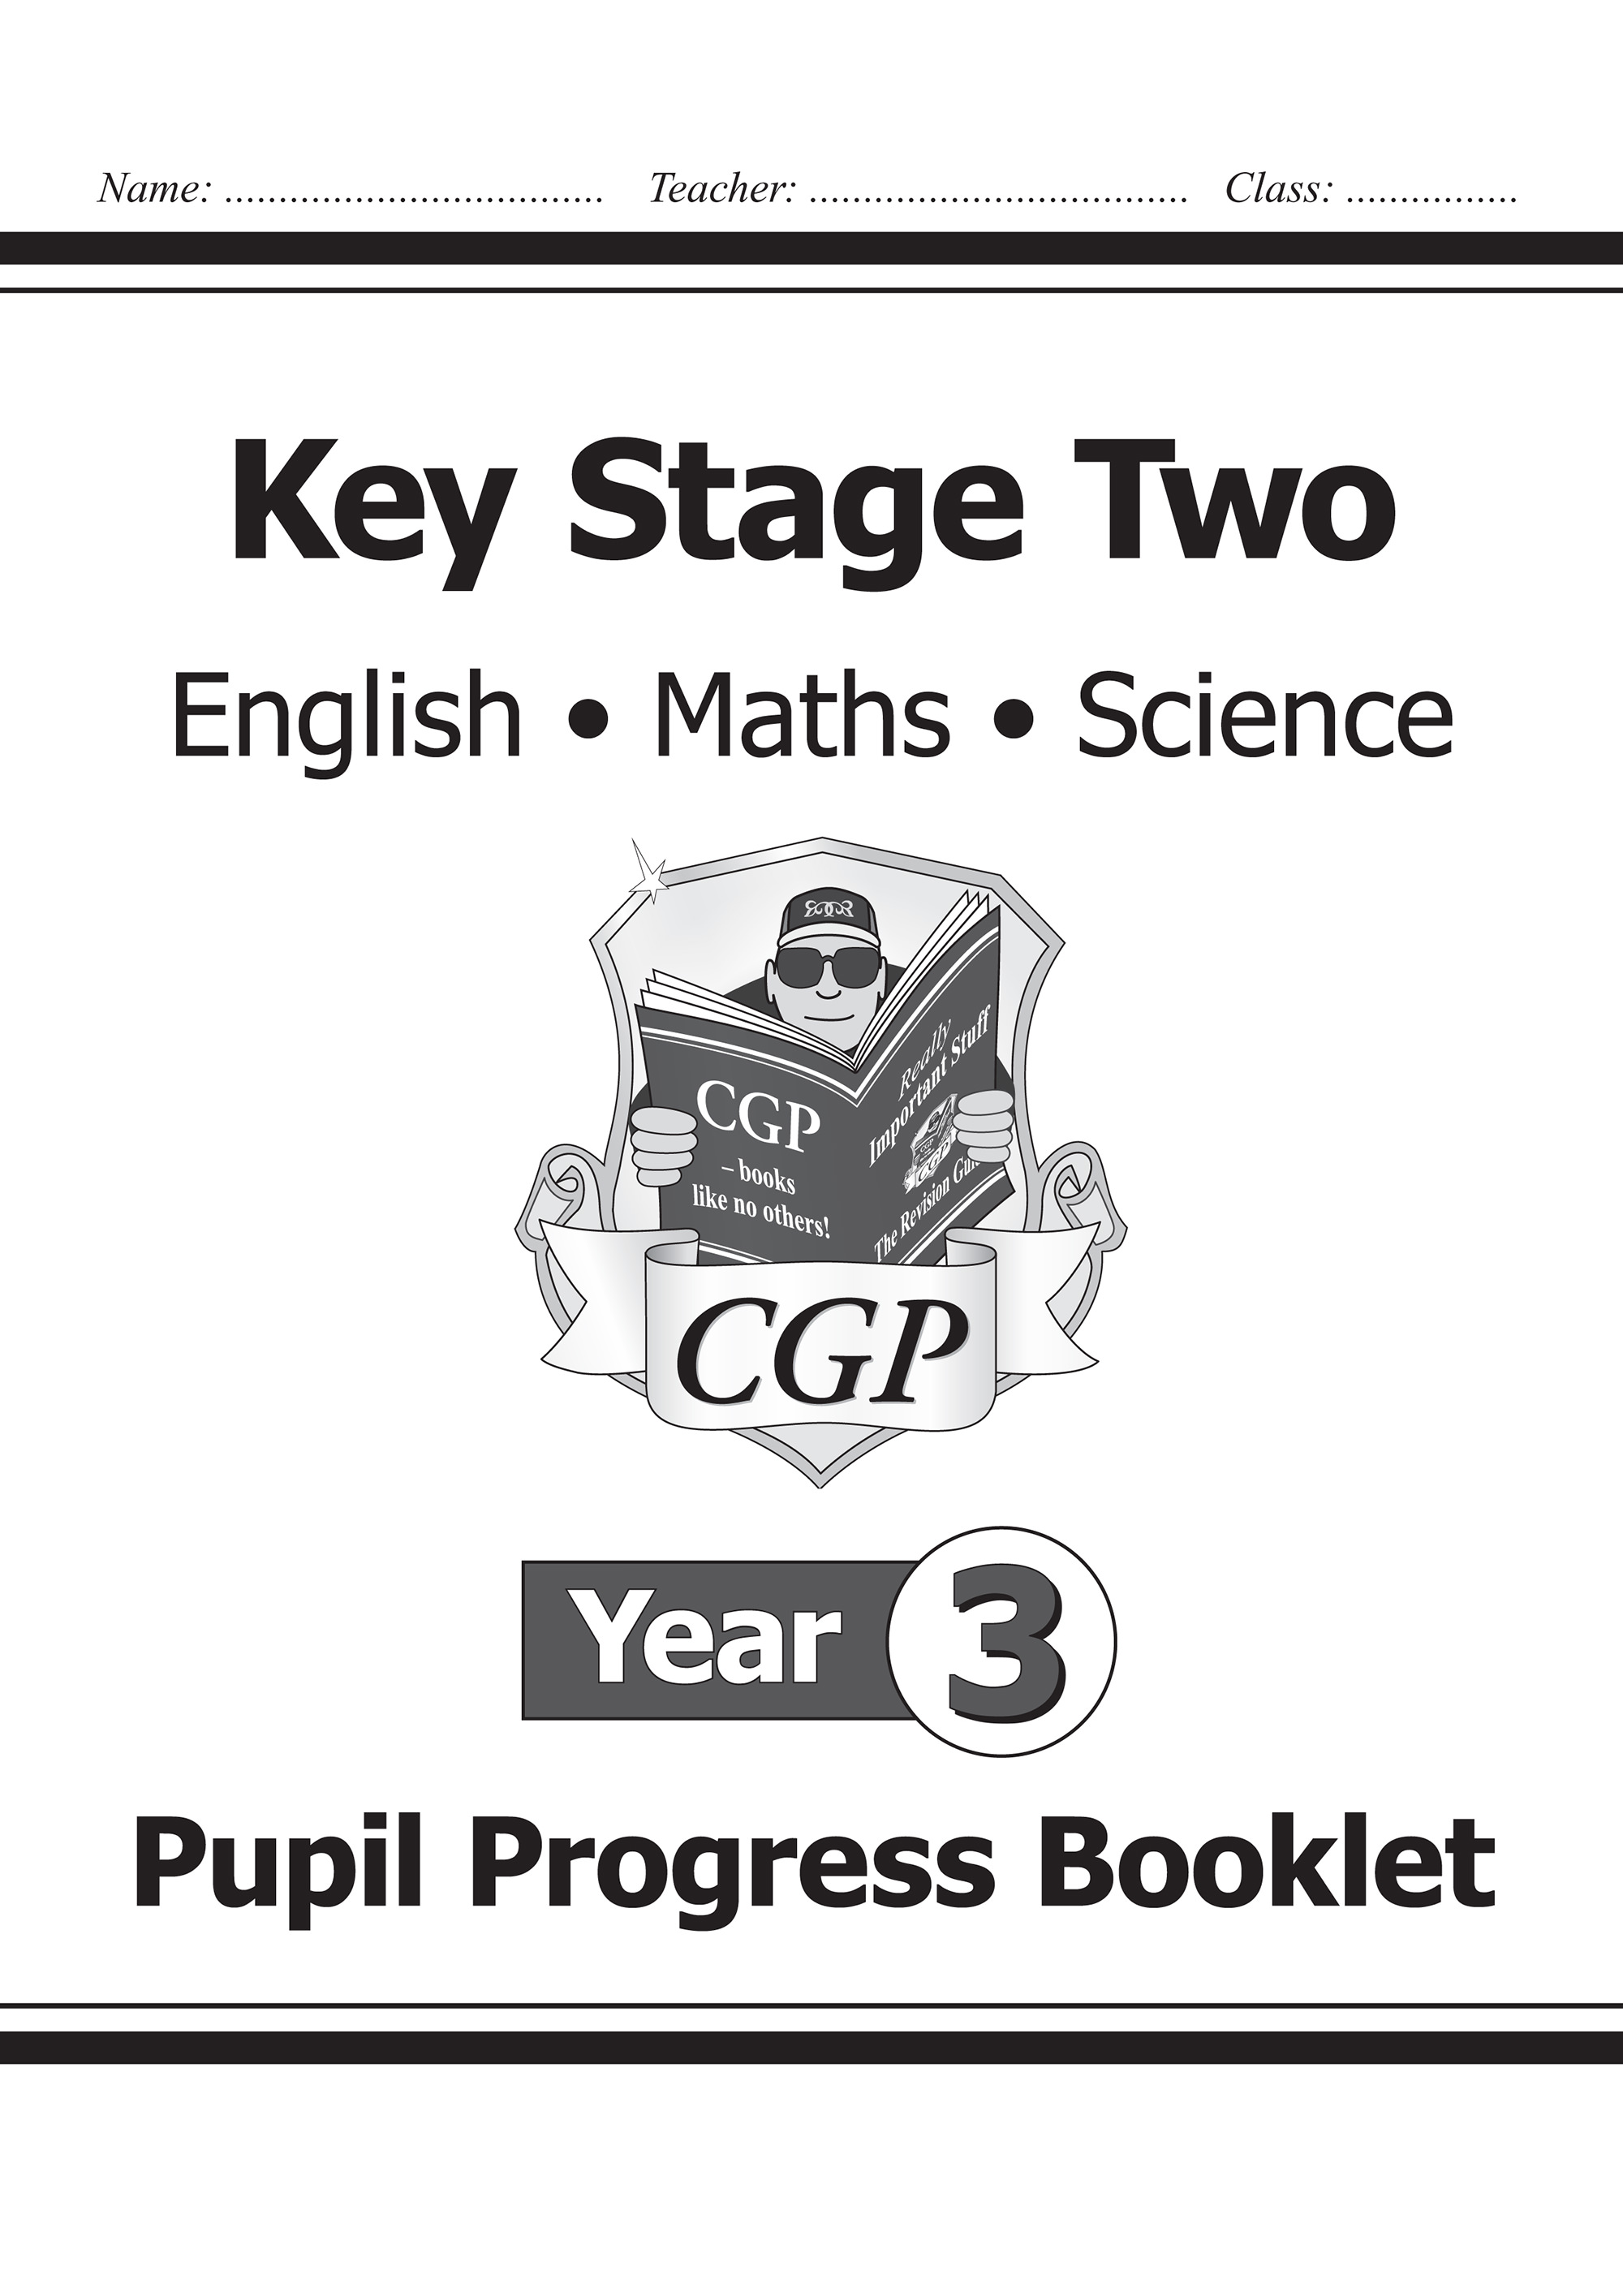 SME3P21 - KS2 Pupil Progress Booklet for English, Maths and Science - Year 3